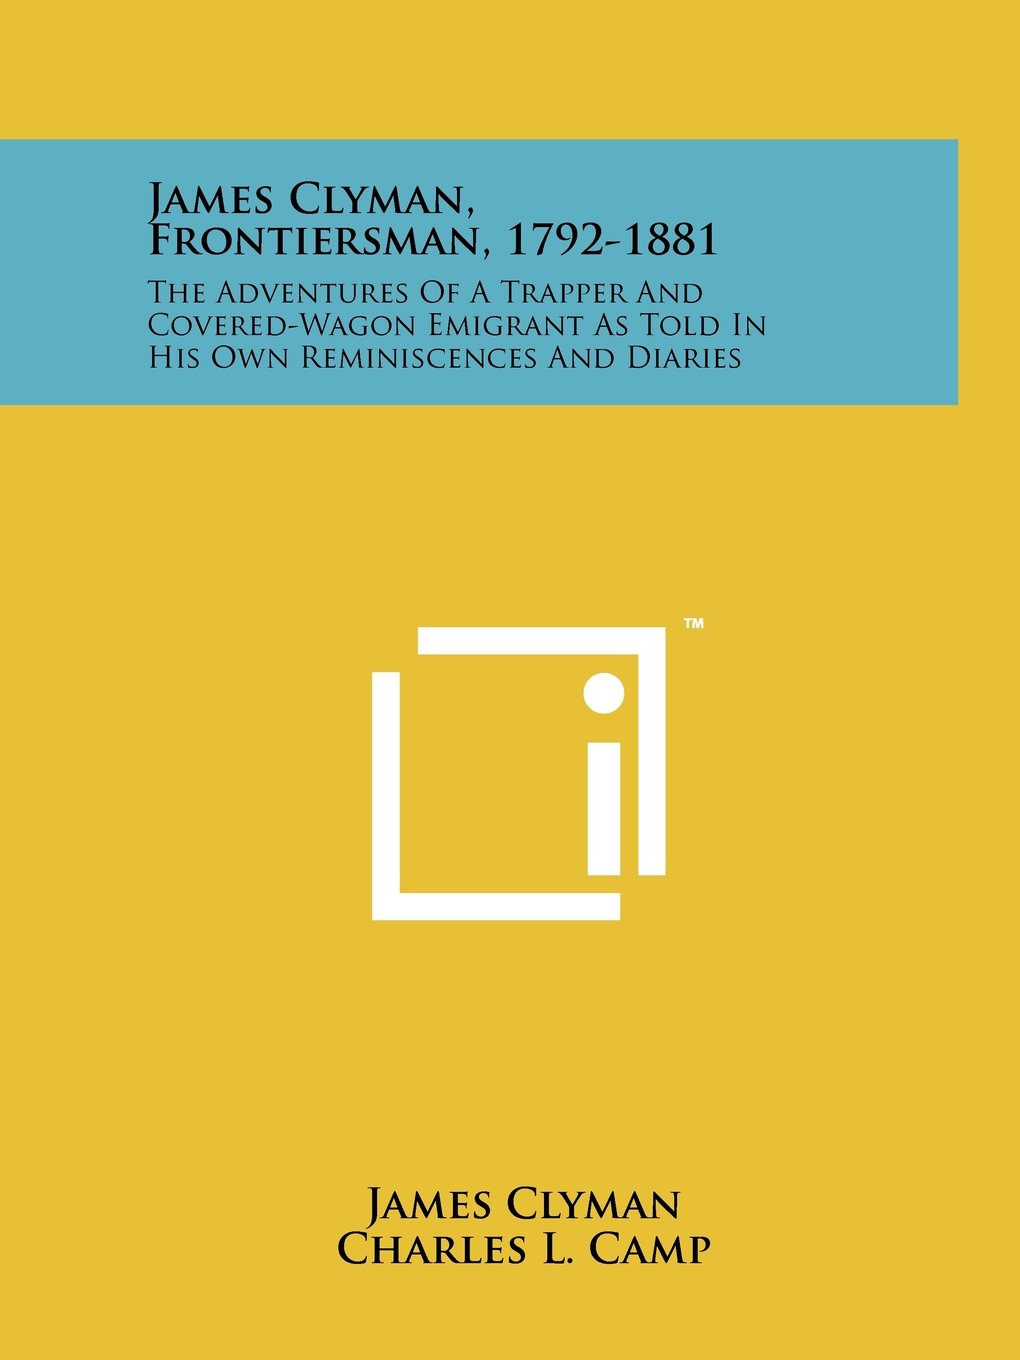 Download James Clyman, Frontiersman, 1792-1881: The Adventures Of A Trapper And Covered-Wagon Emigrant As Told In His Own Reminiscences And Diaries pdf epub